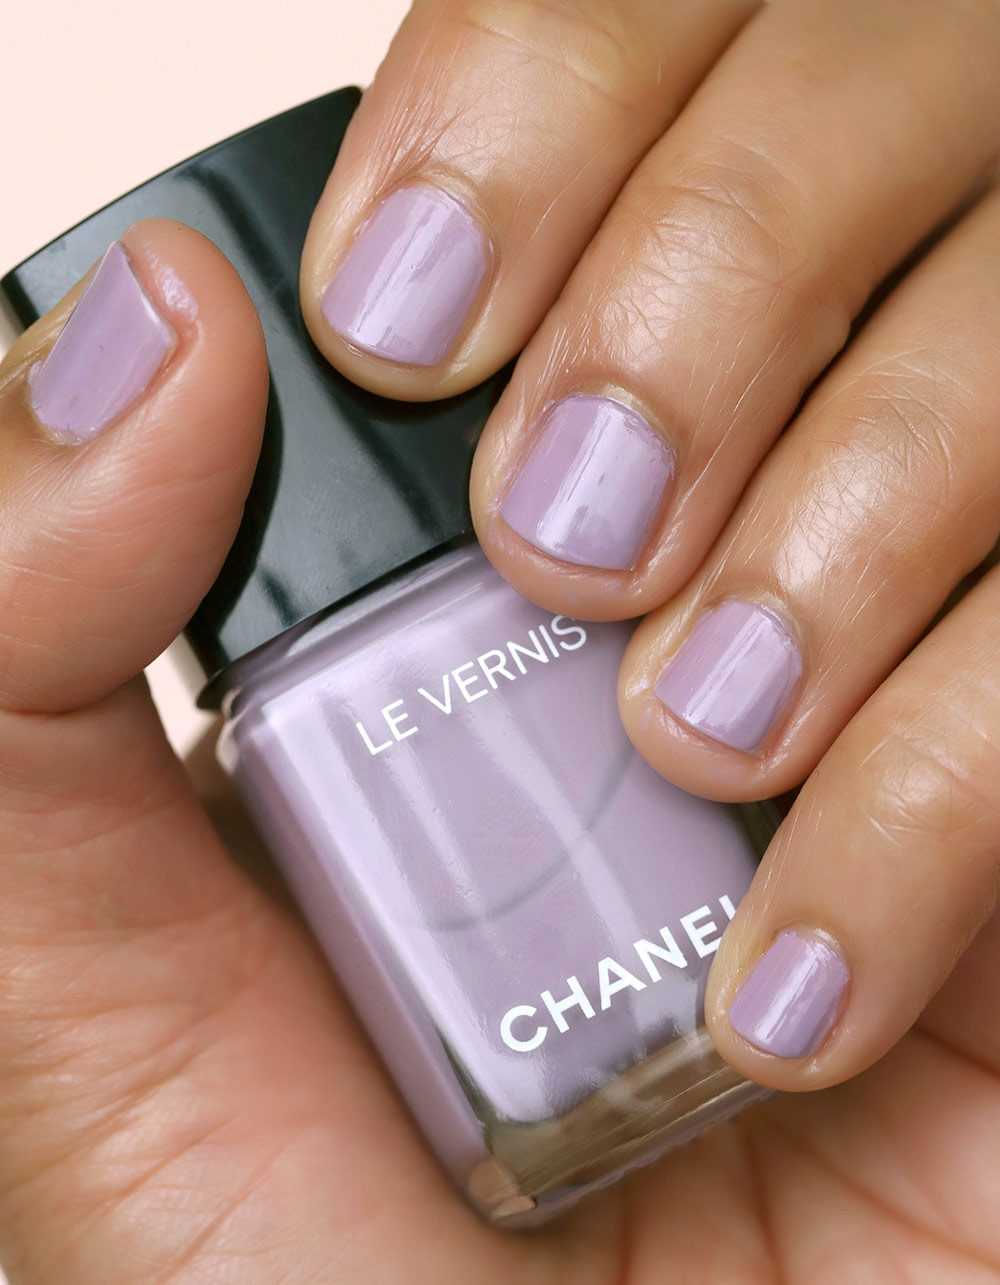 chanel purple ray swatch day 1